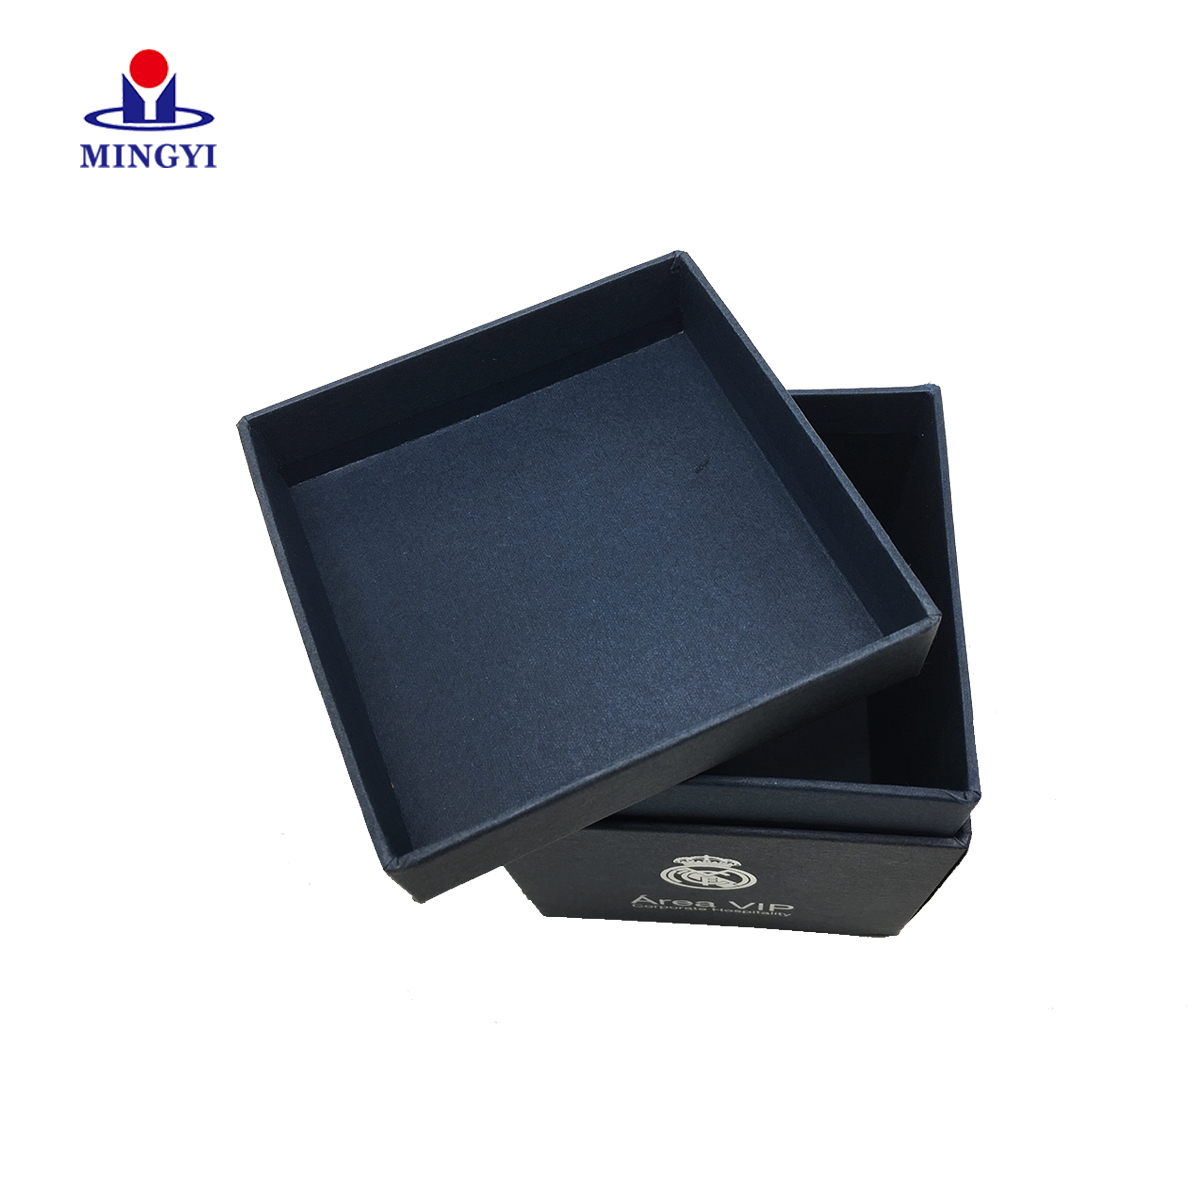 China manufacturer low price good quality car gift set caps nfl nba with best